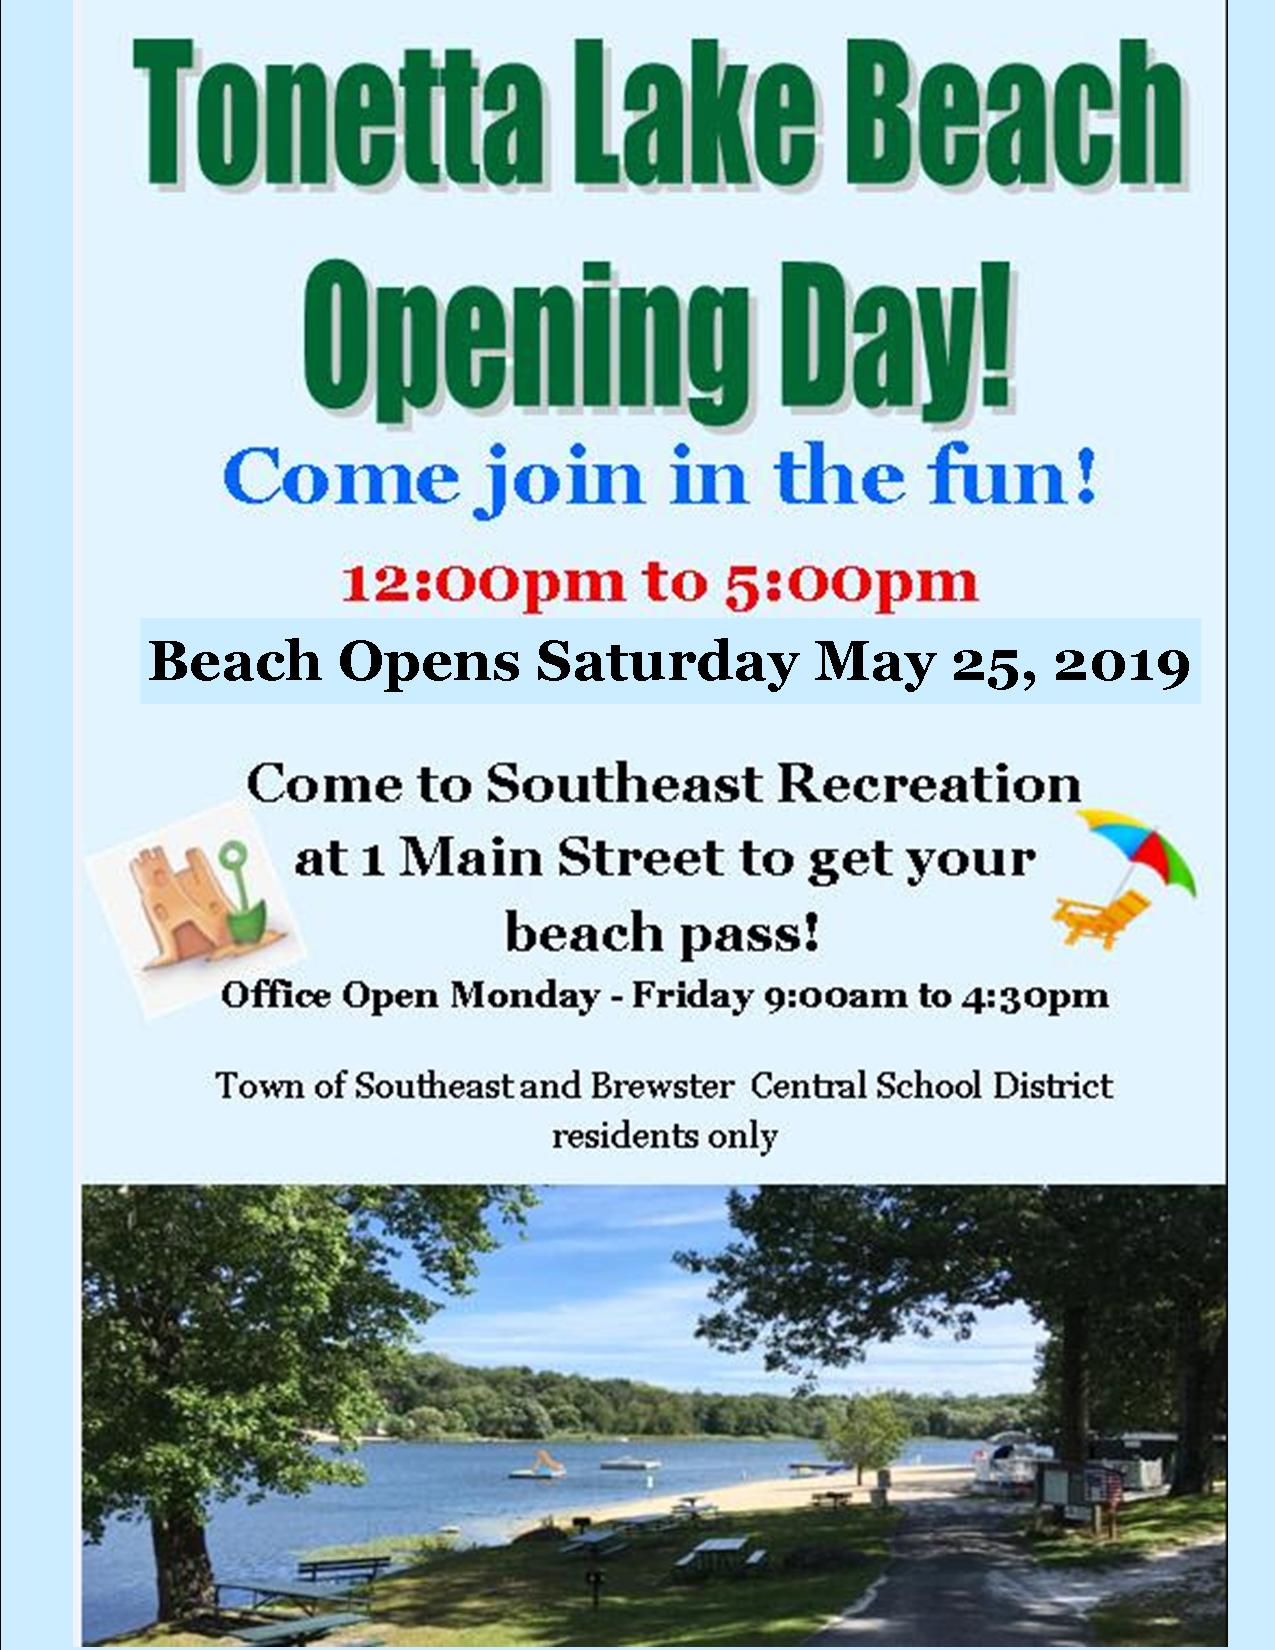 Tonetta Lake Opening Day 2019